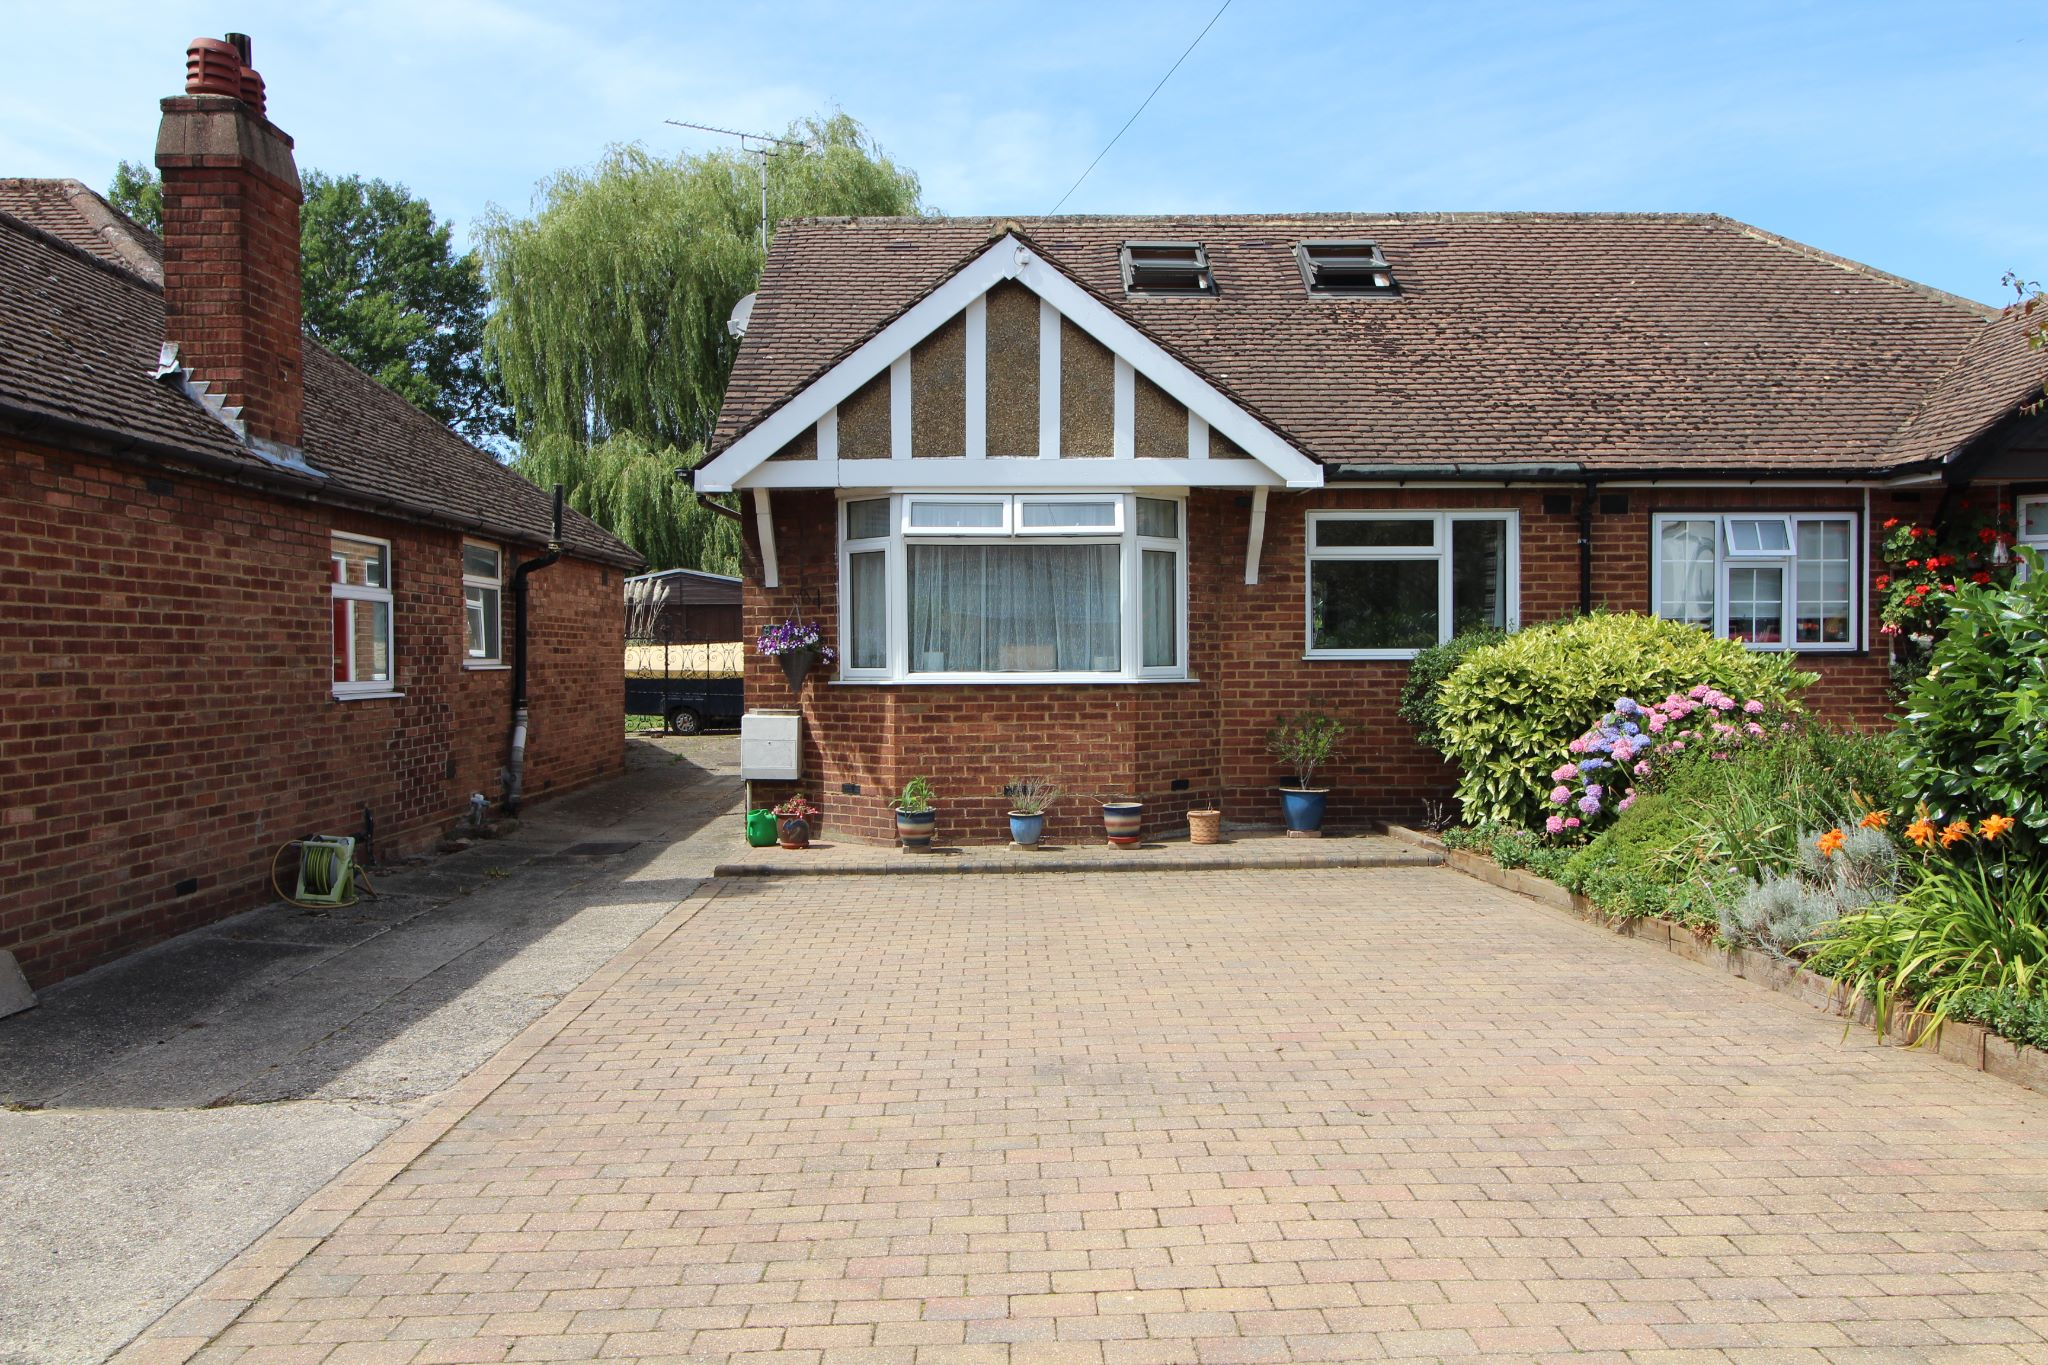 4 bedroom semi-detached bungalow SSTC in Potters Bar - Photograph 3